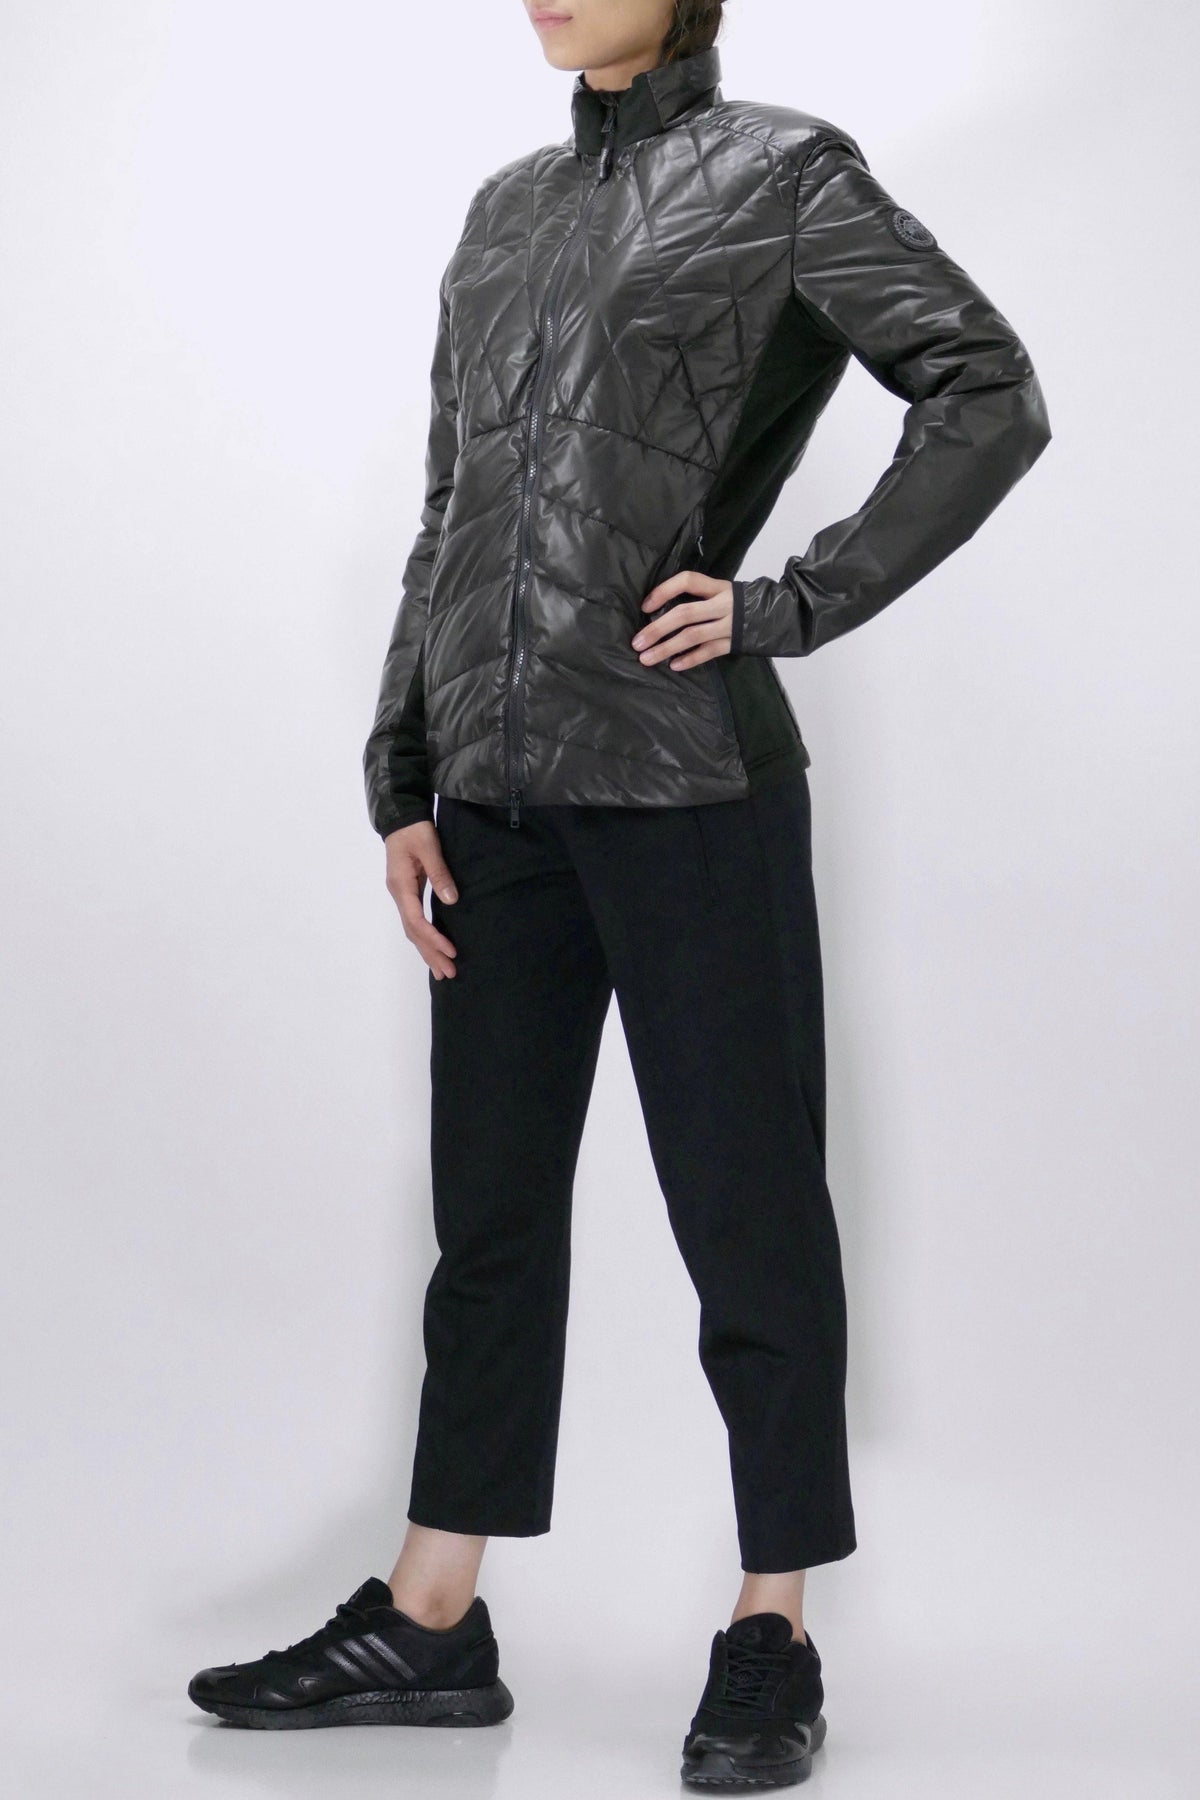 Canada Goose Womens Jacket Nomad Hybridge Black